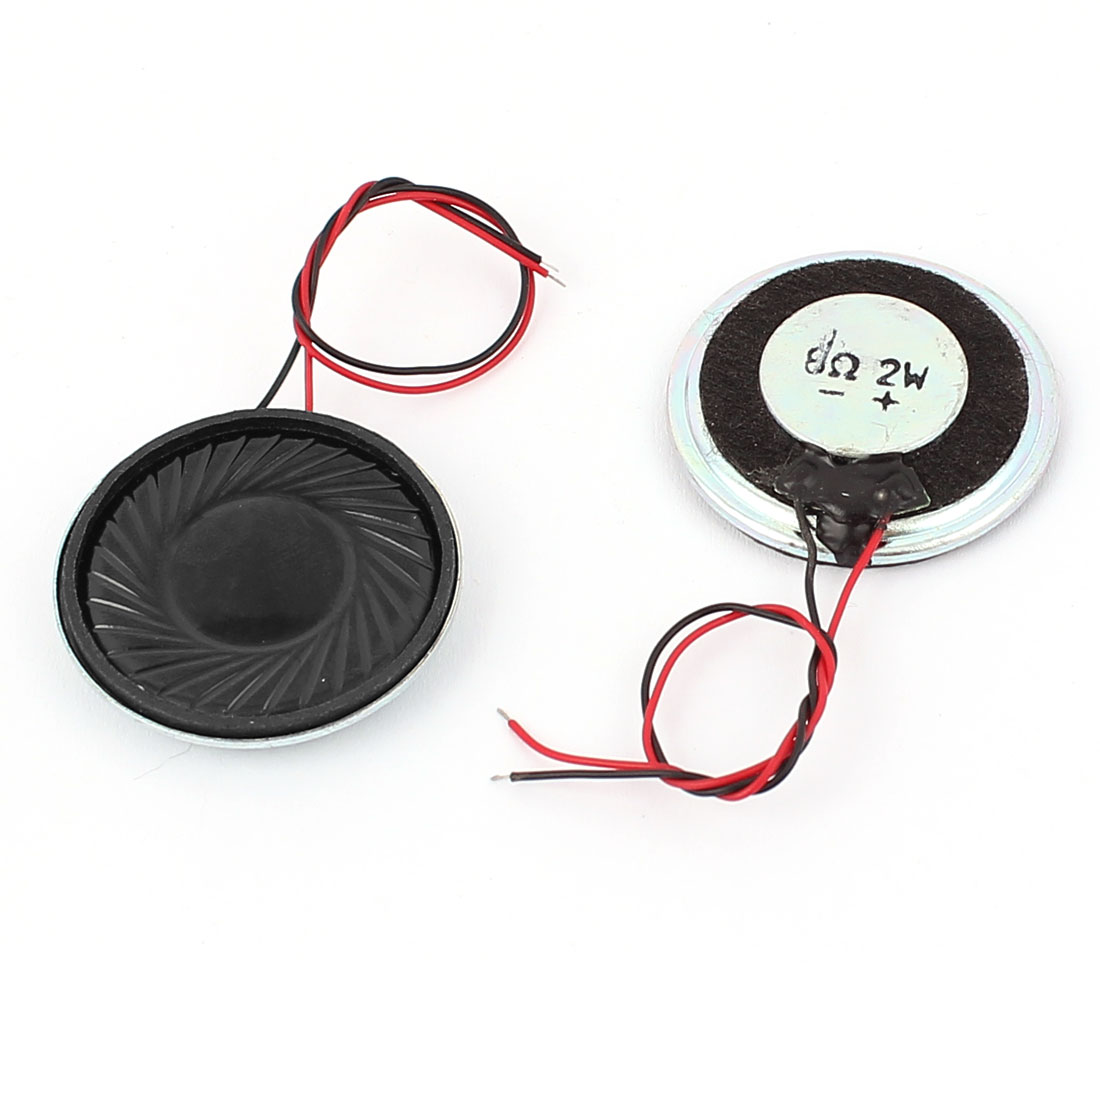 2Pcs 8 Ohm 2W Round Metal Shell Wire Lead Internal Magnet Speaker Horn